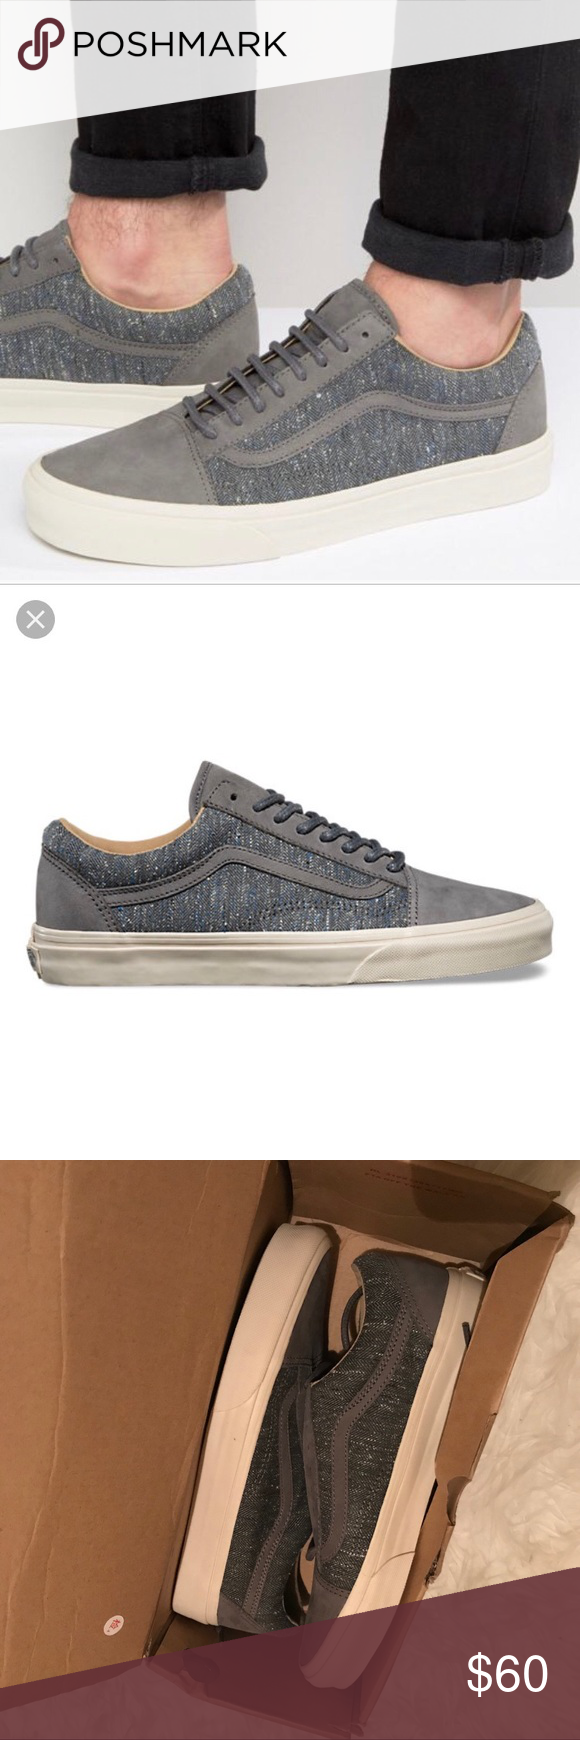 VANS - tweed old Skool gray fashion sneakers UNISEX MENS SIZE 7.5 WOMENS  SIZE 9 Tweed Old Skool vans Off white sole New in box   with tags Vans Shoes  ... 56fb19121